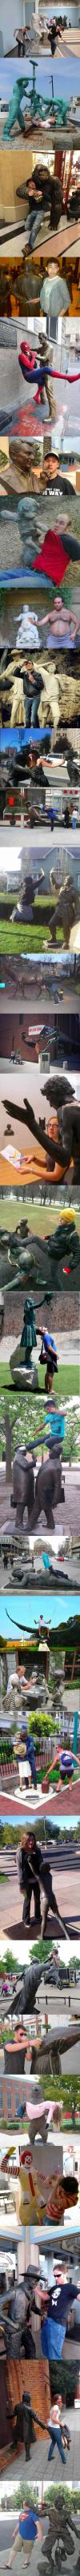 people making art with statues, hacked irl, lol